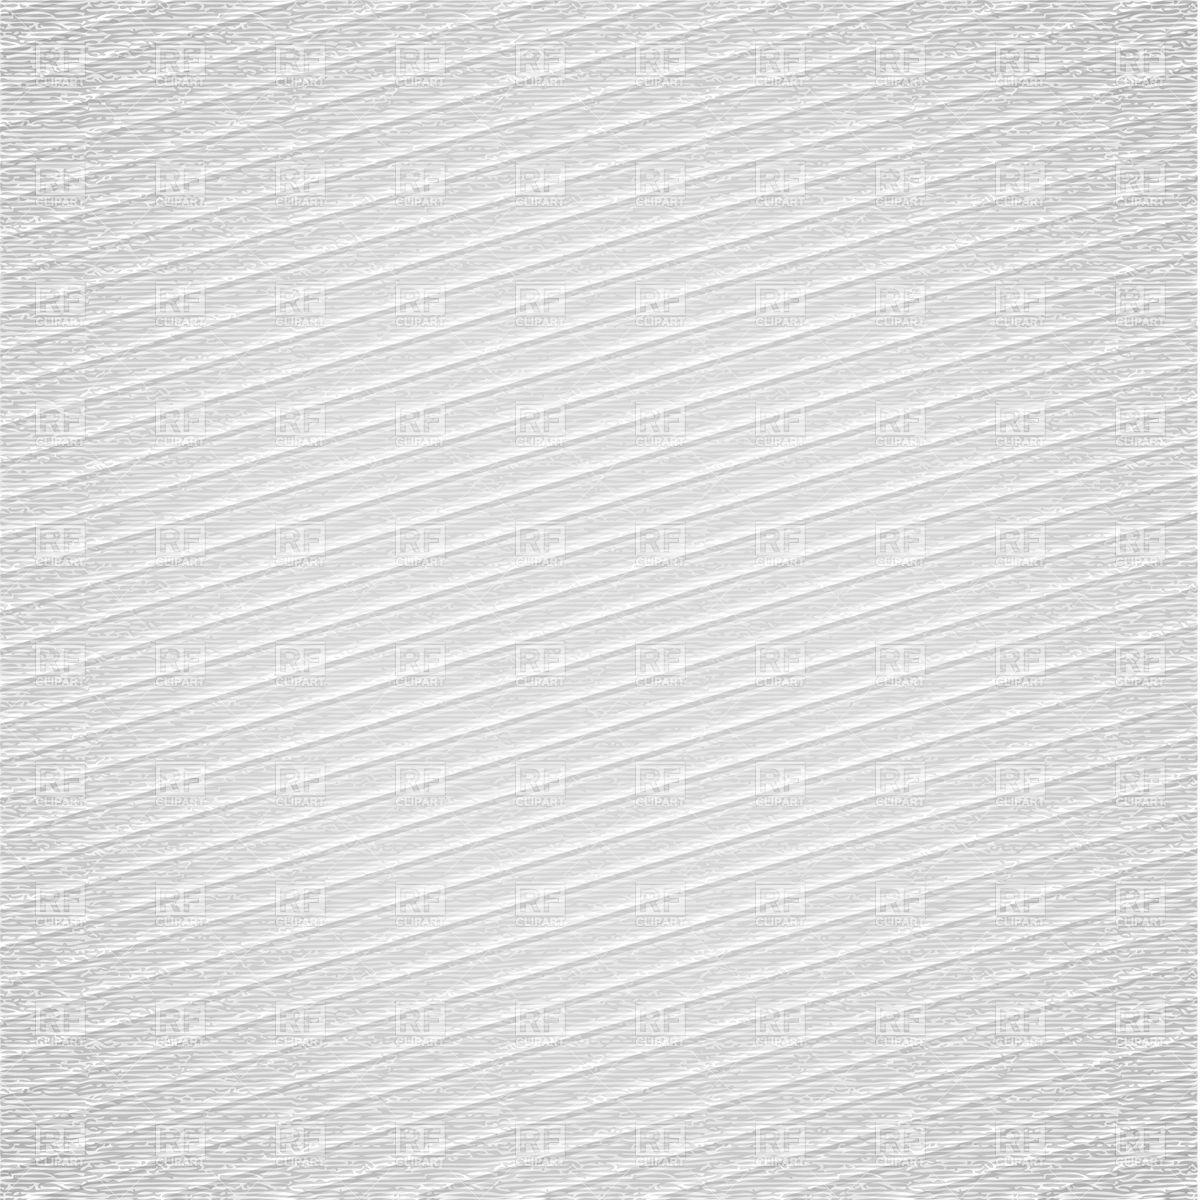 Light gray corduroy texture or background Vector Image #18474.